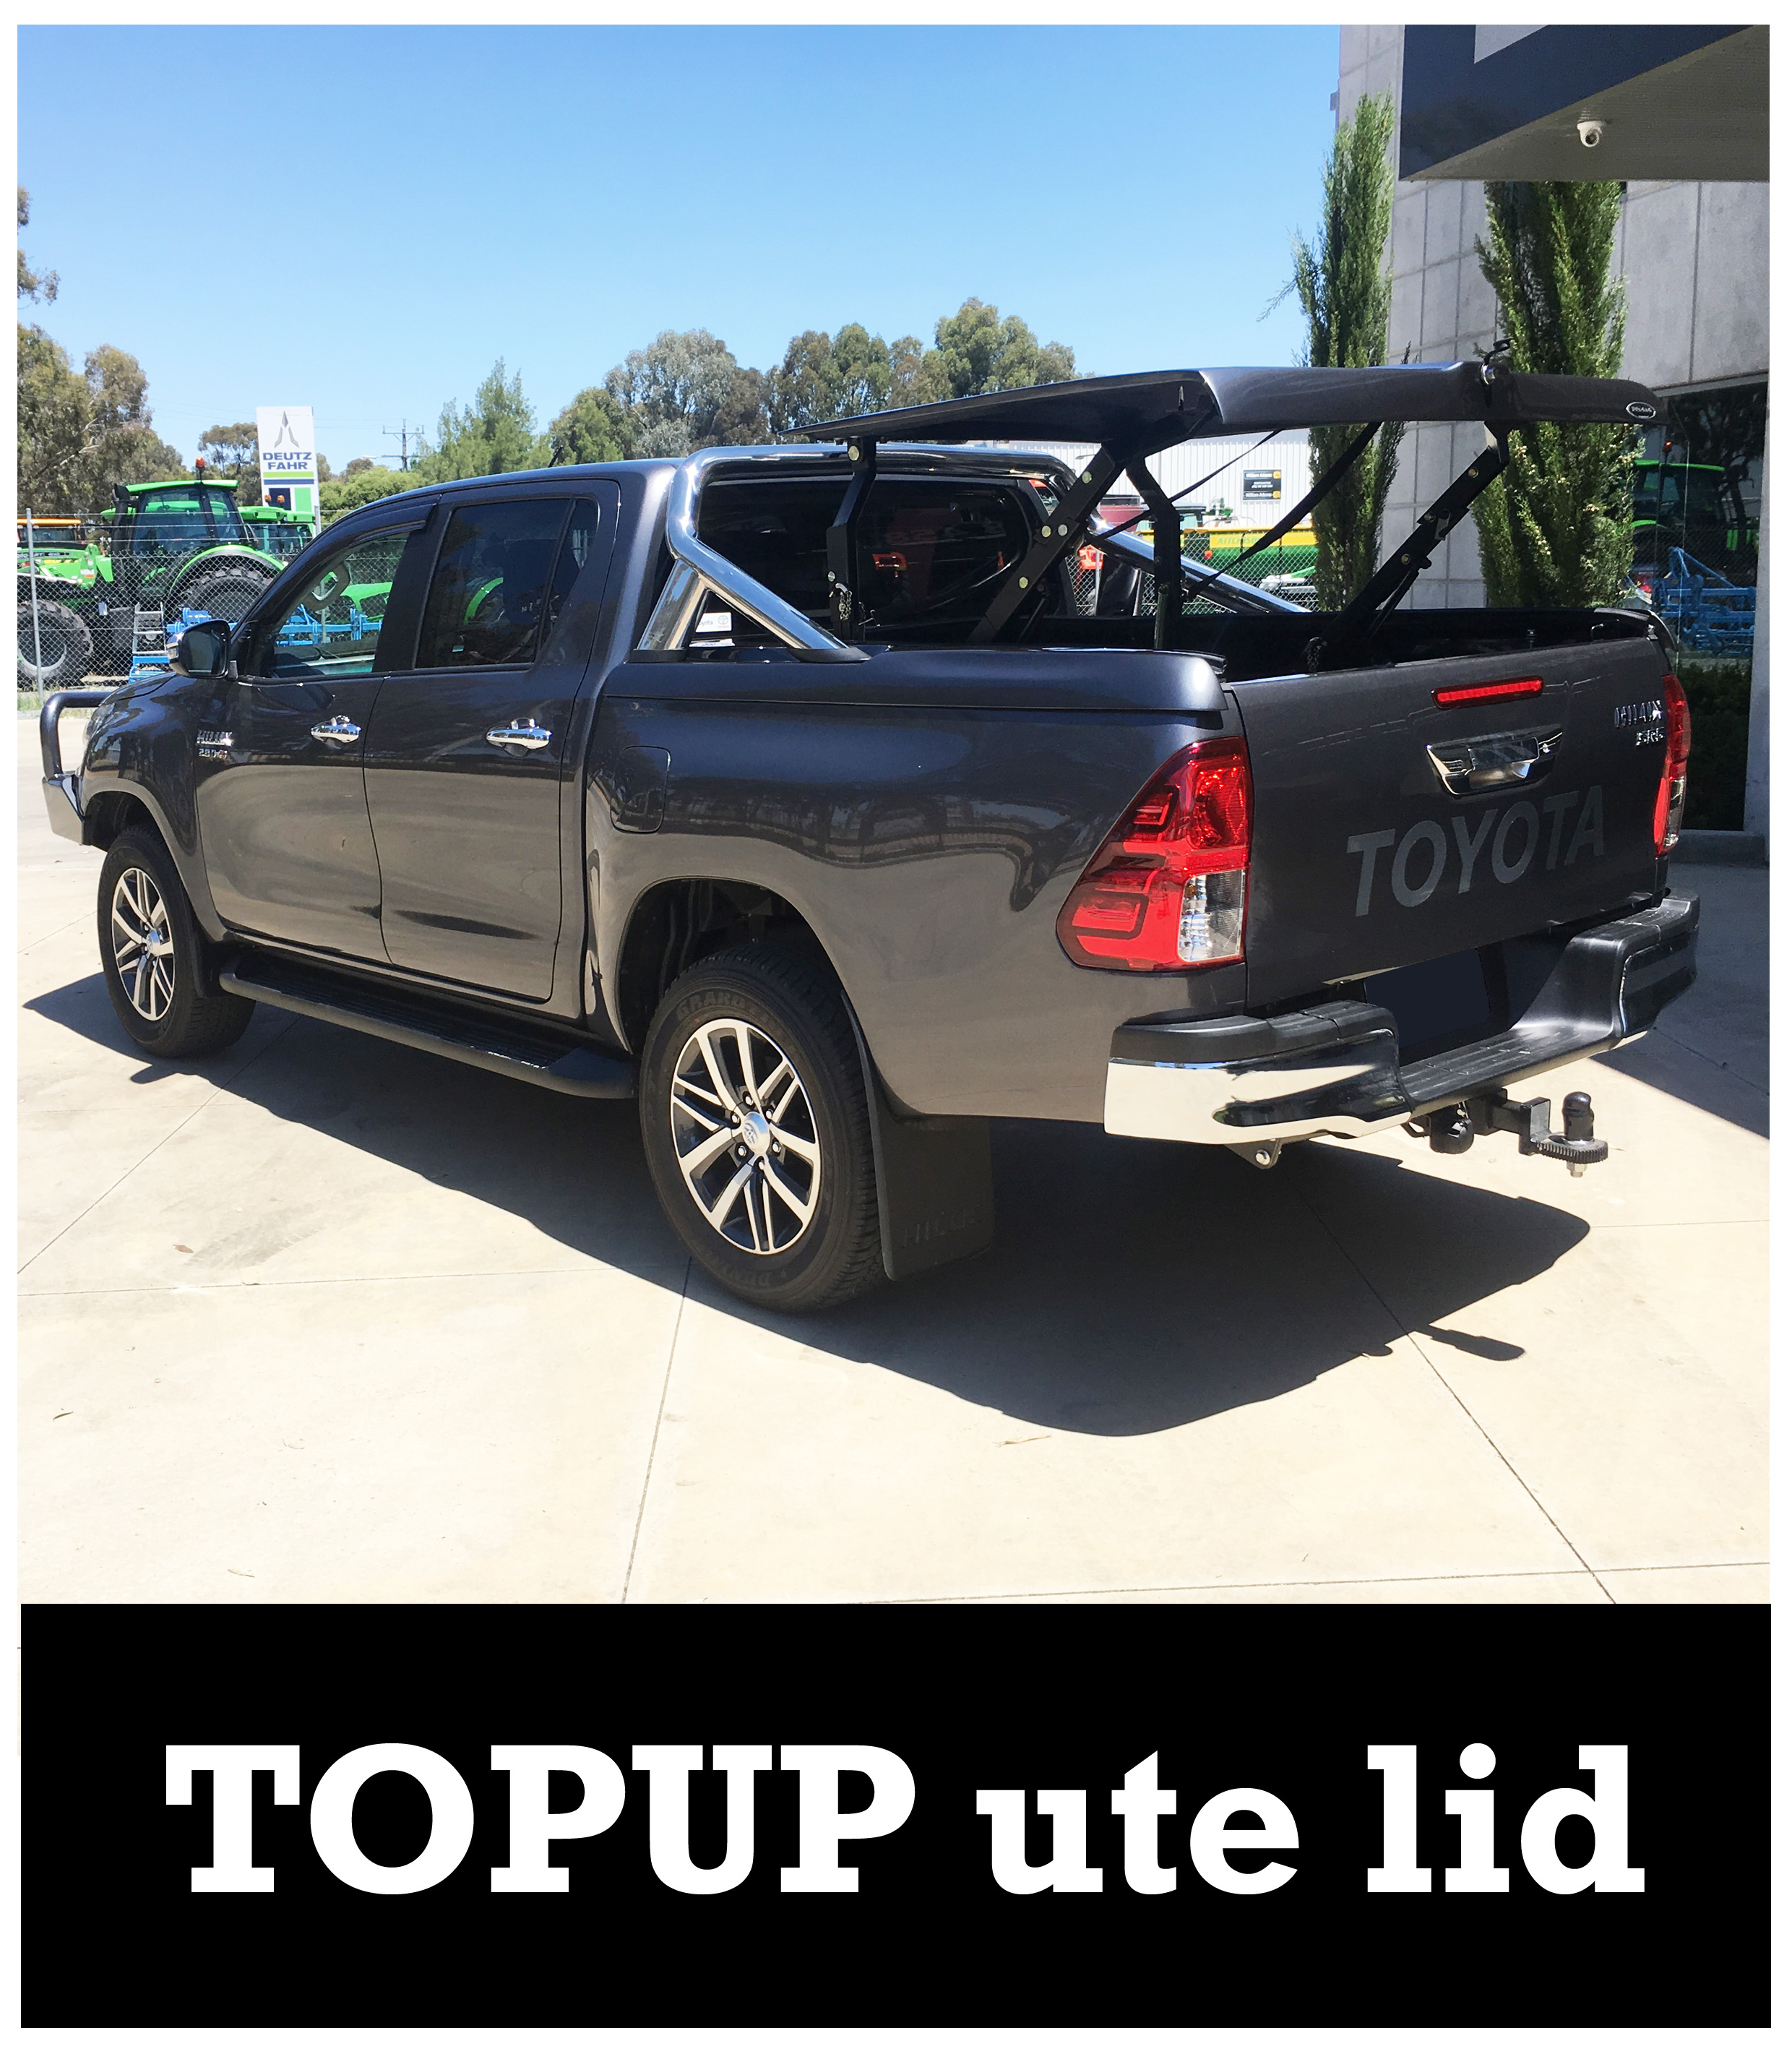 WEbsite_Hilux_TopUp_Thumbnail_edited-1.jpg